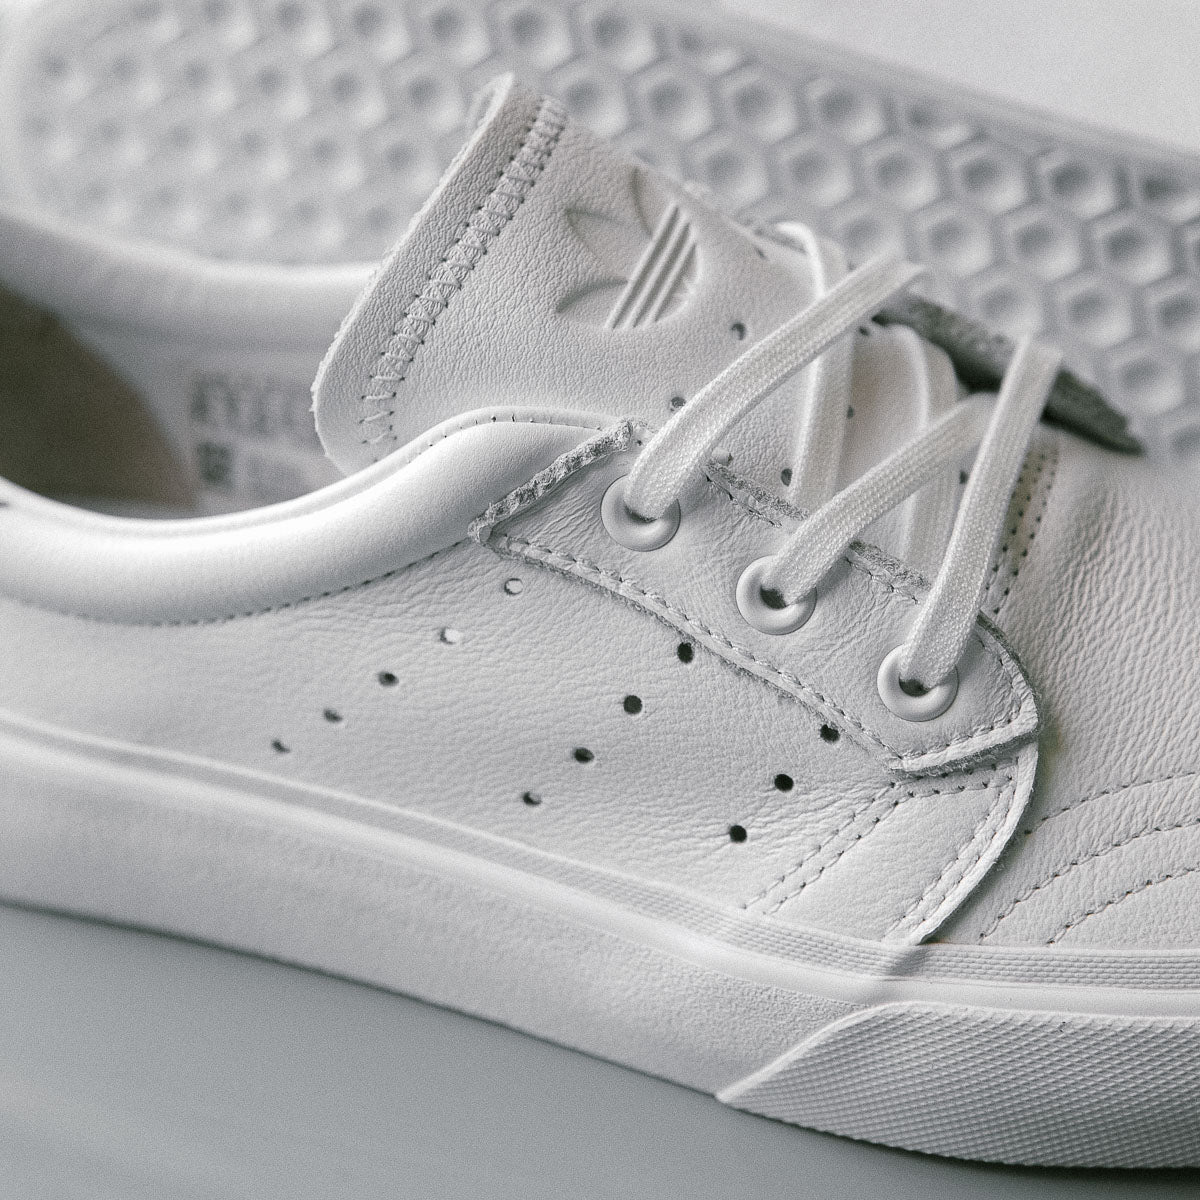 adidas Skateboarding: Introducing the Coronado | Flatspot